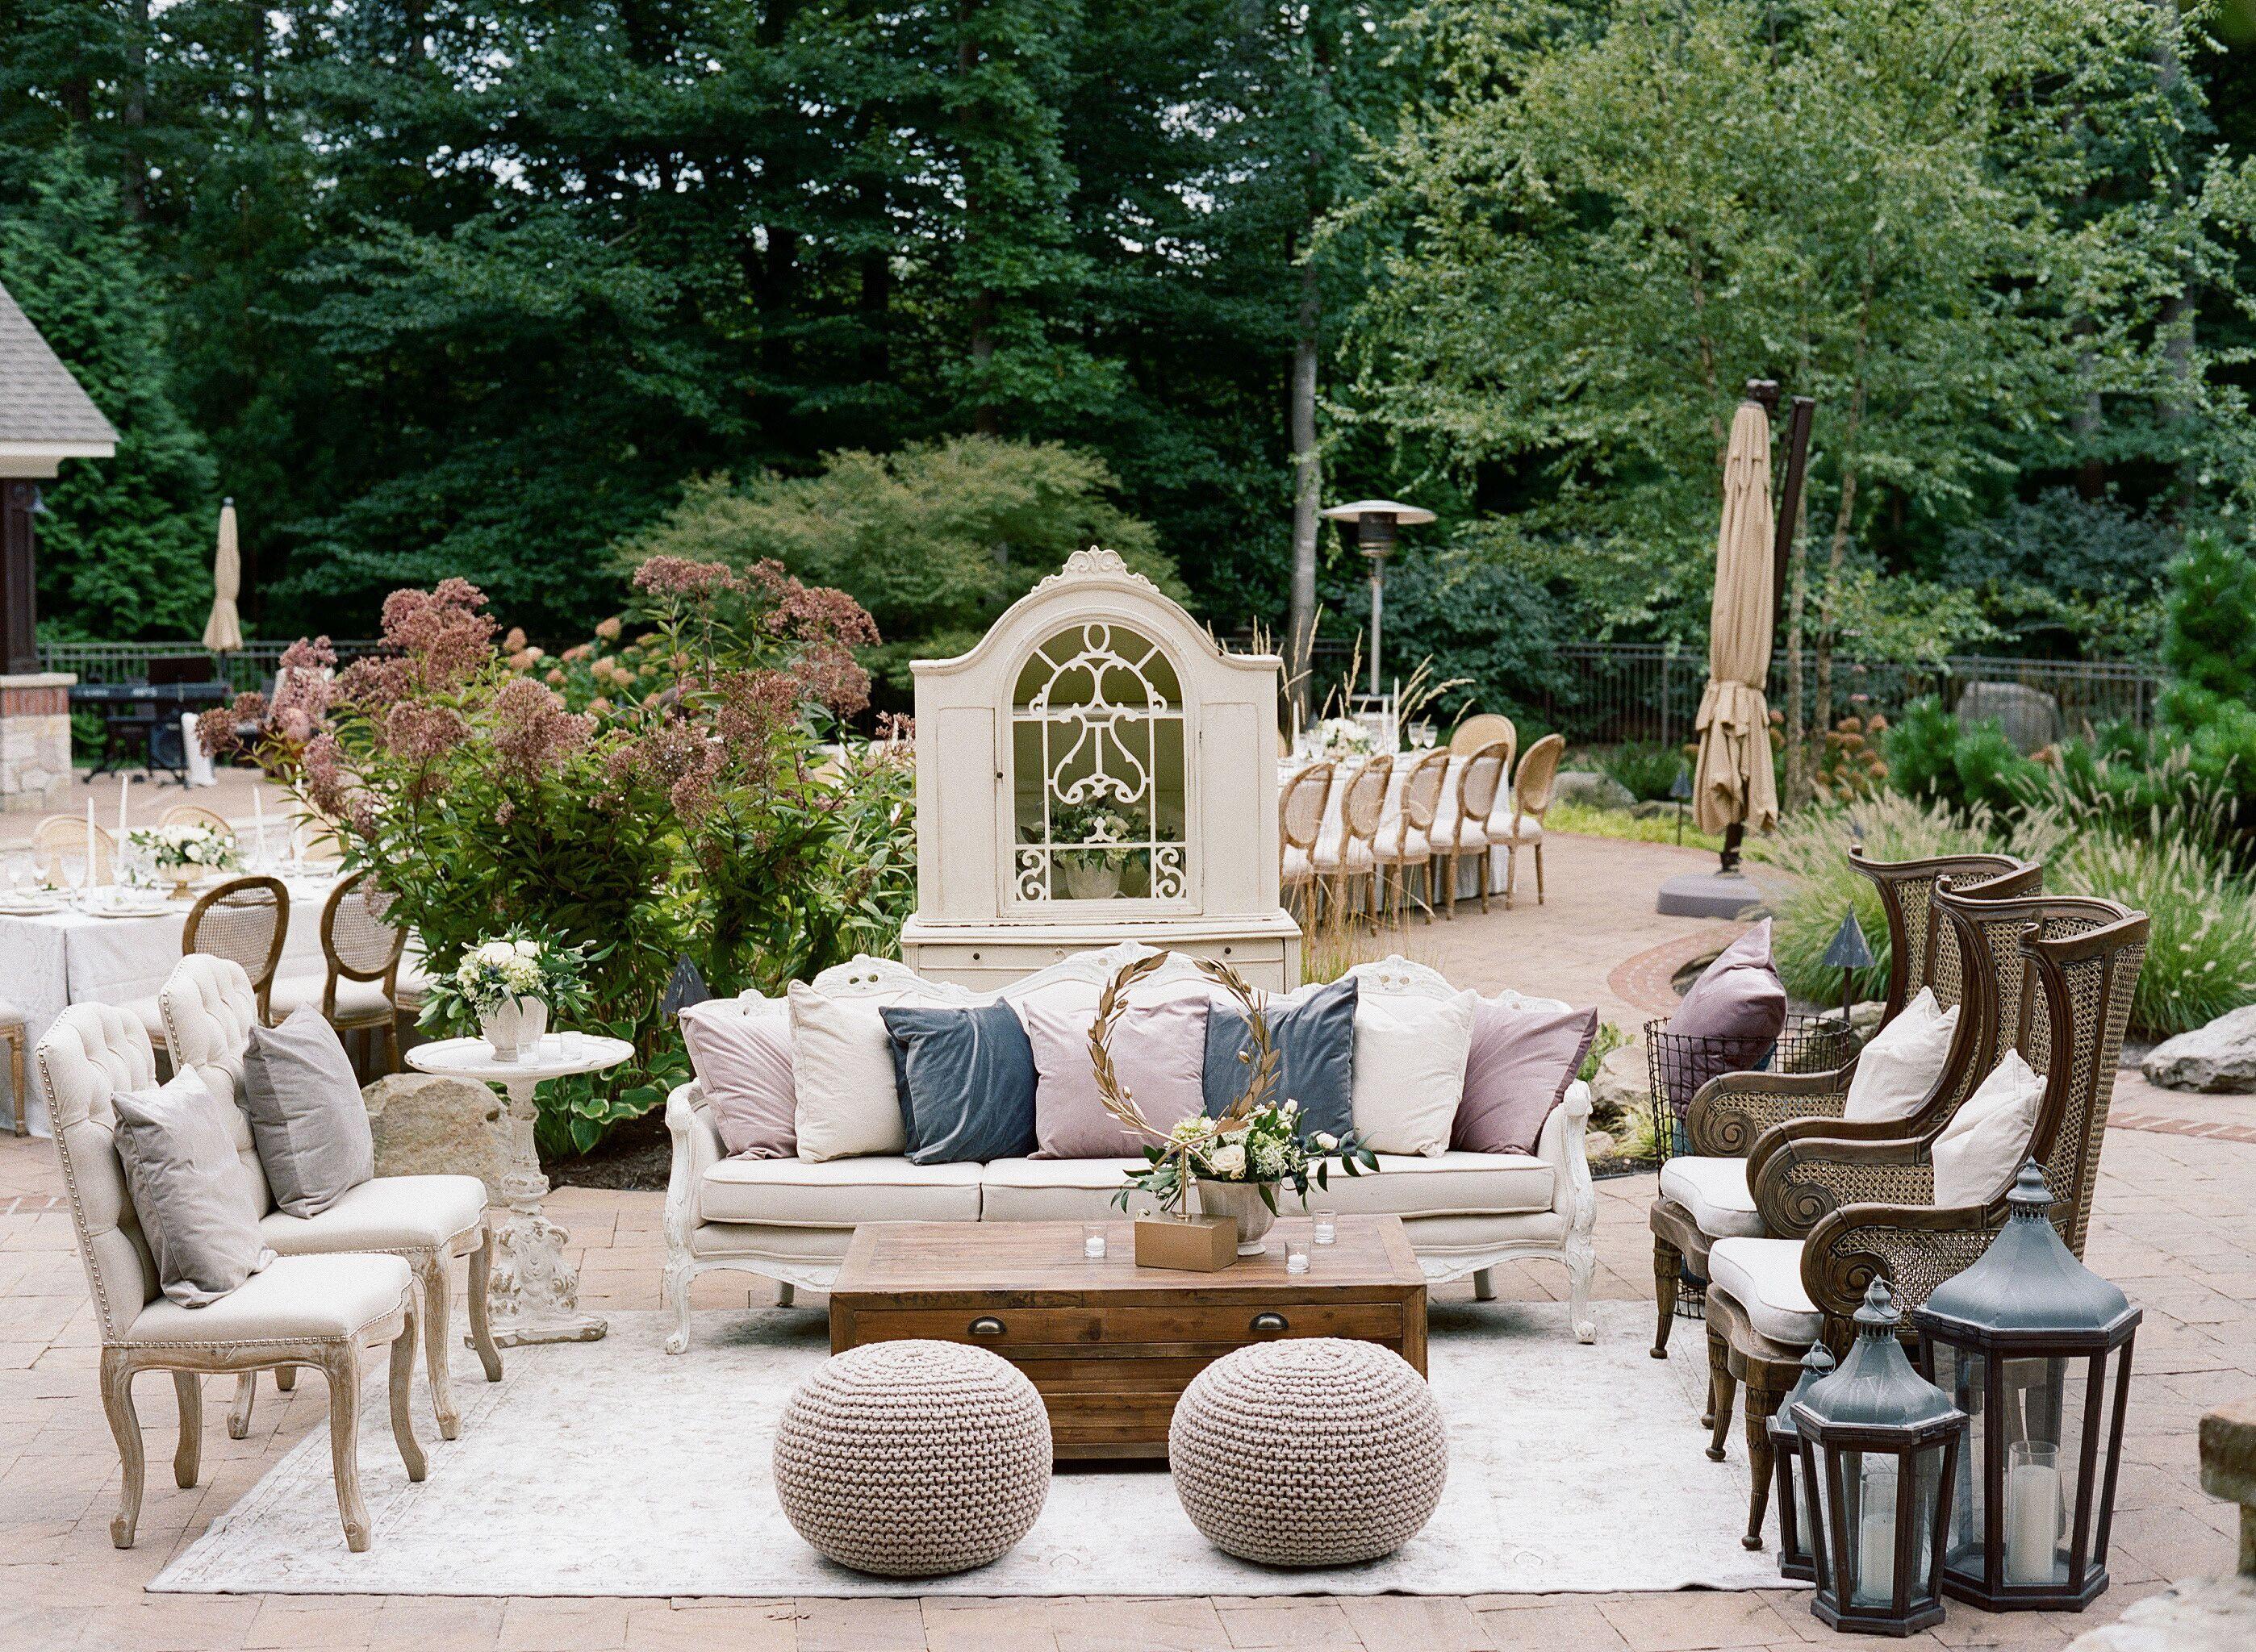 Luxury Outdoor Wedding Lounge In Leesburg Virginia Photography Elisa Bricker Styling Planning A Charming Affa Luxury Patio Furniture Patio Luxe Lounge